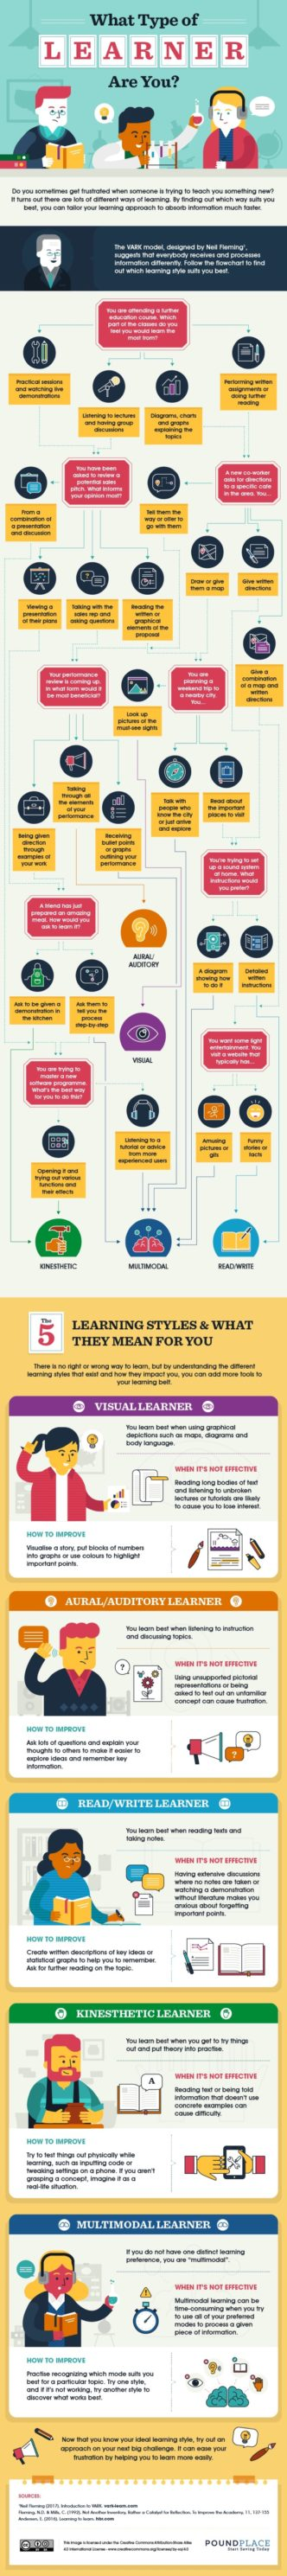 What type of learner are you #infographic